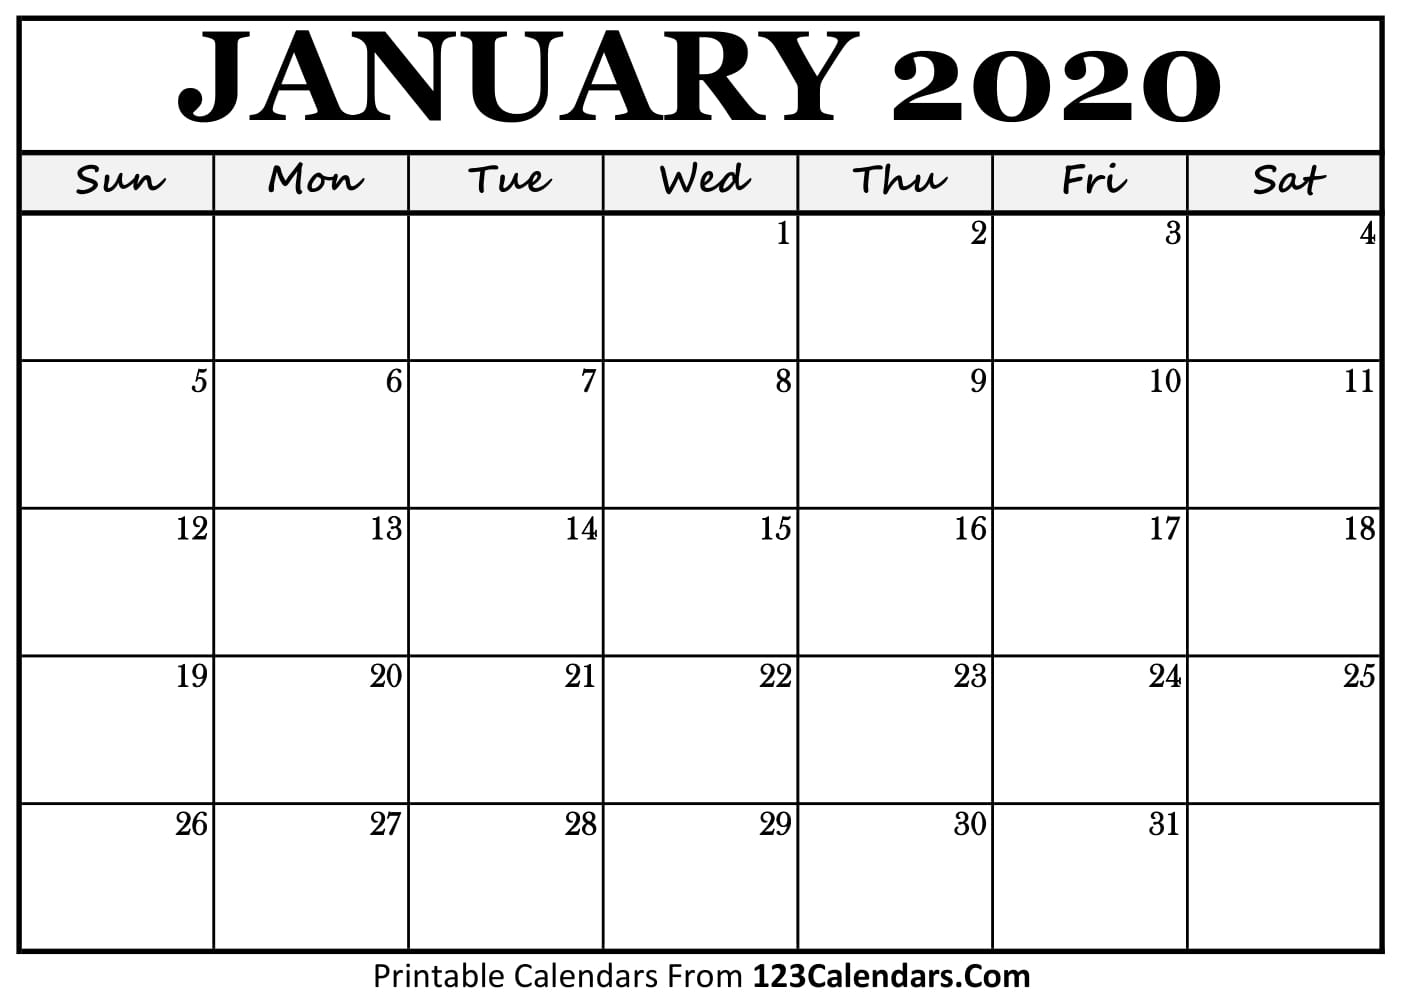 014 January Calendar Template Ideas Blank Striking Printable